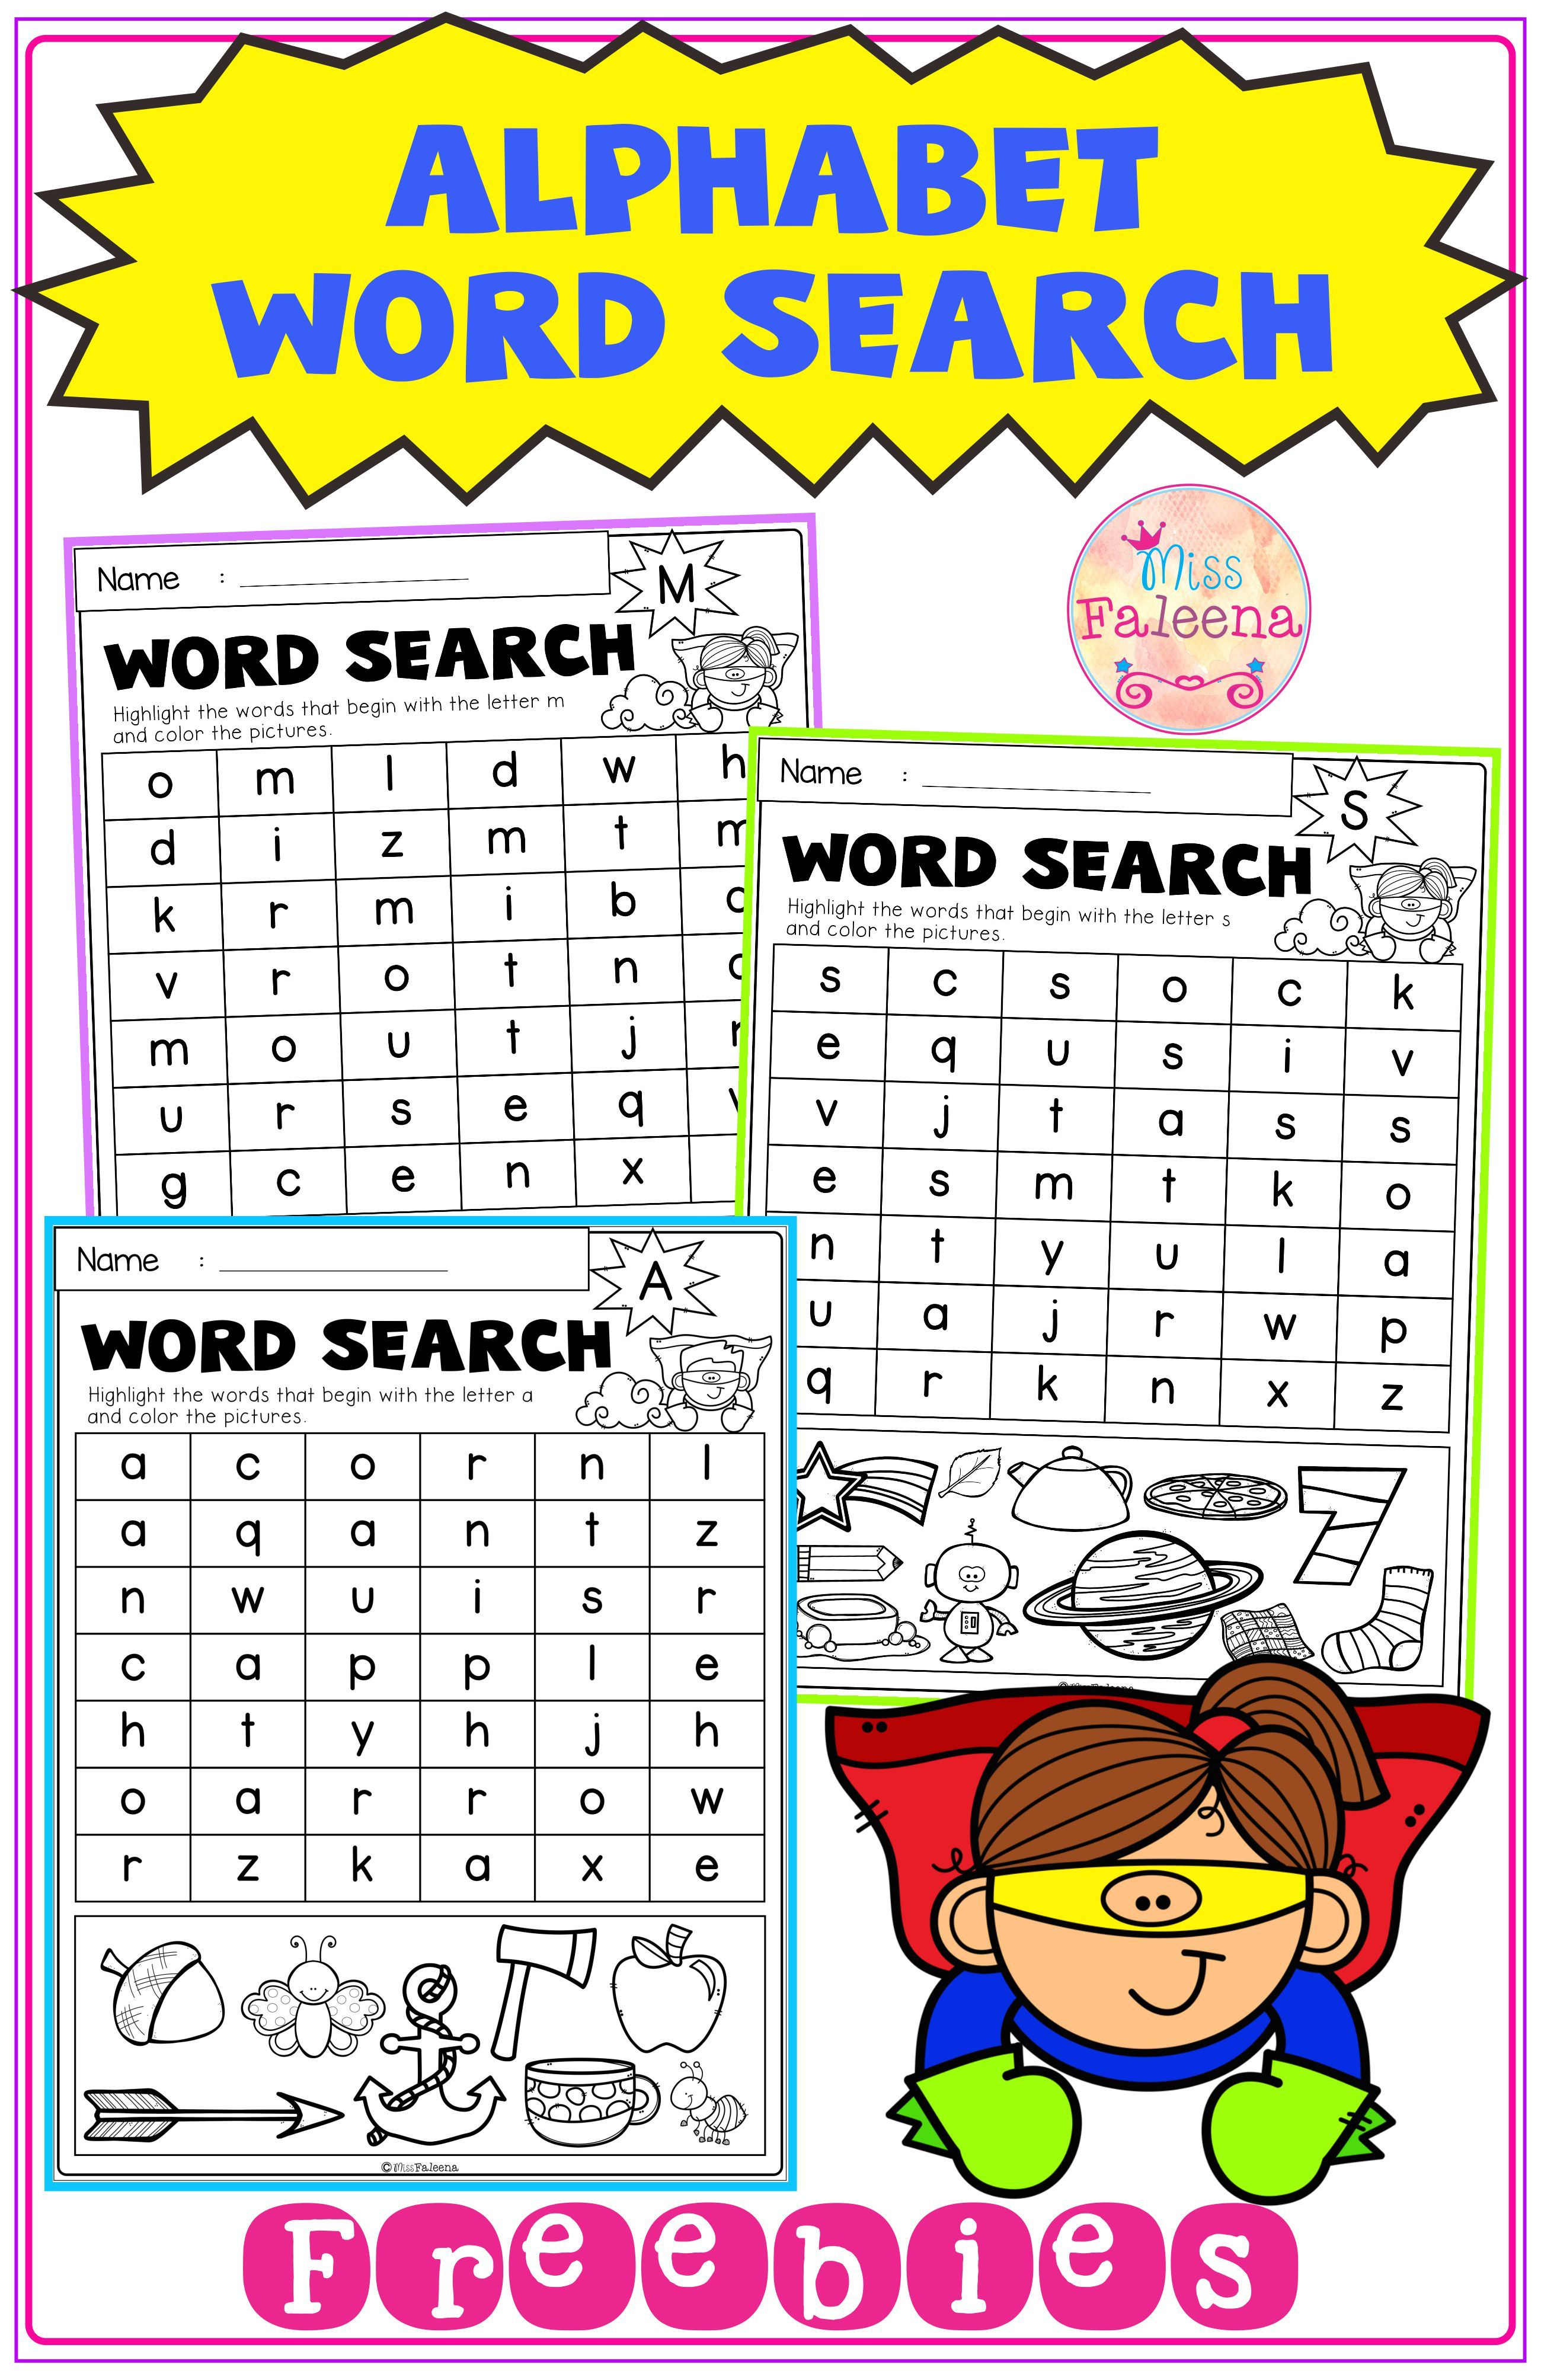 Free Alphabet Word Search